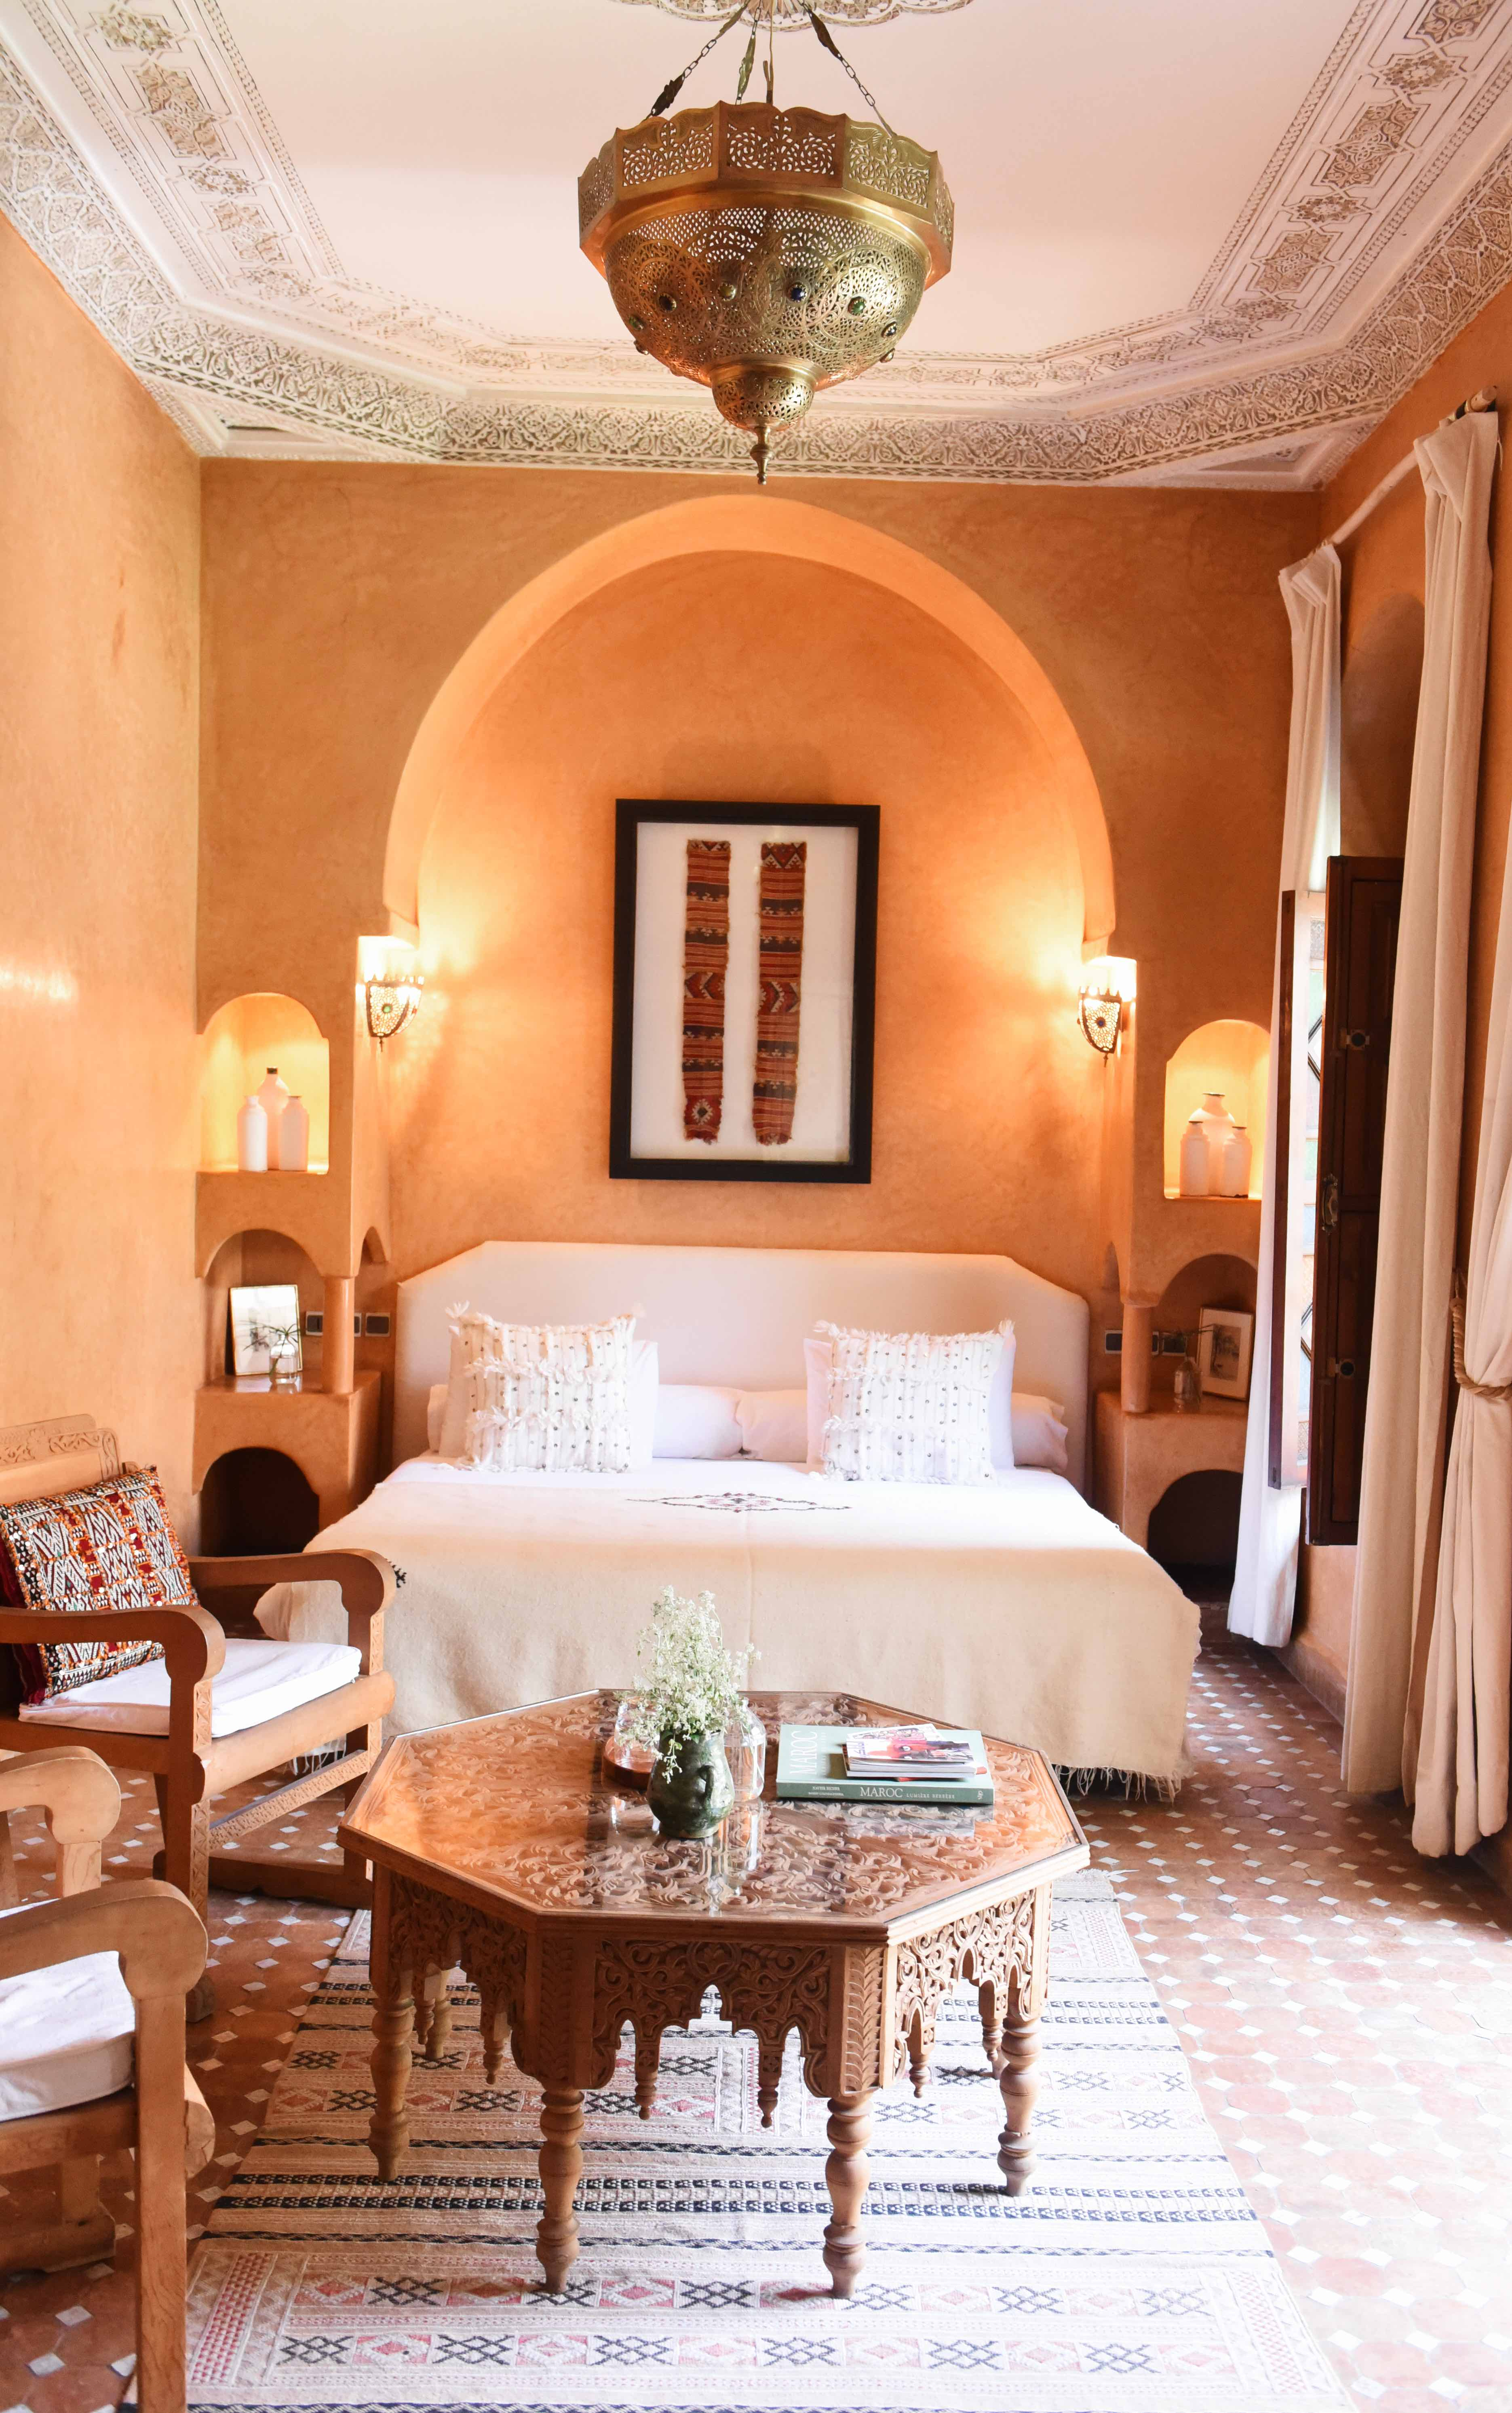 Boutique Hotel Find Riad Jardin Secret Marrakesh Melting Butter